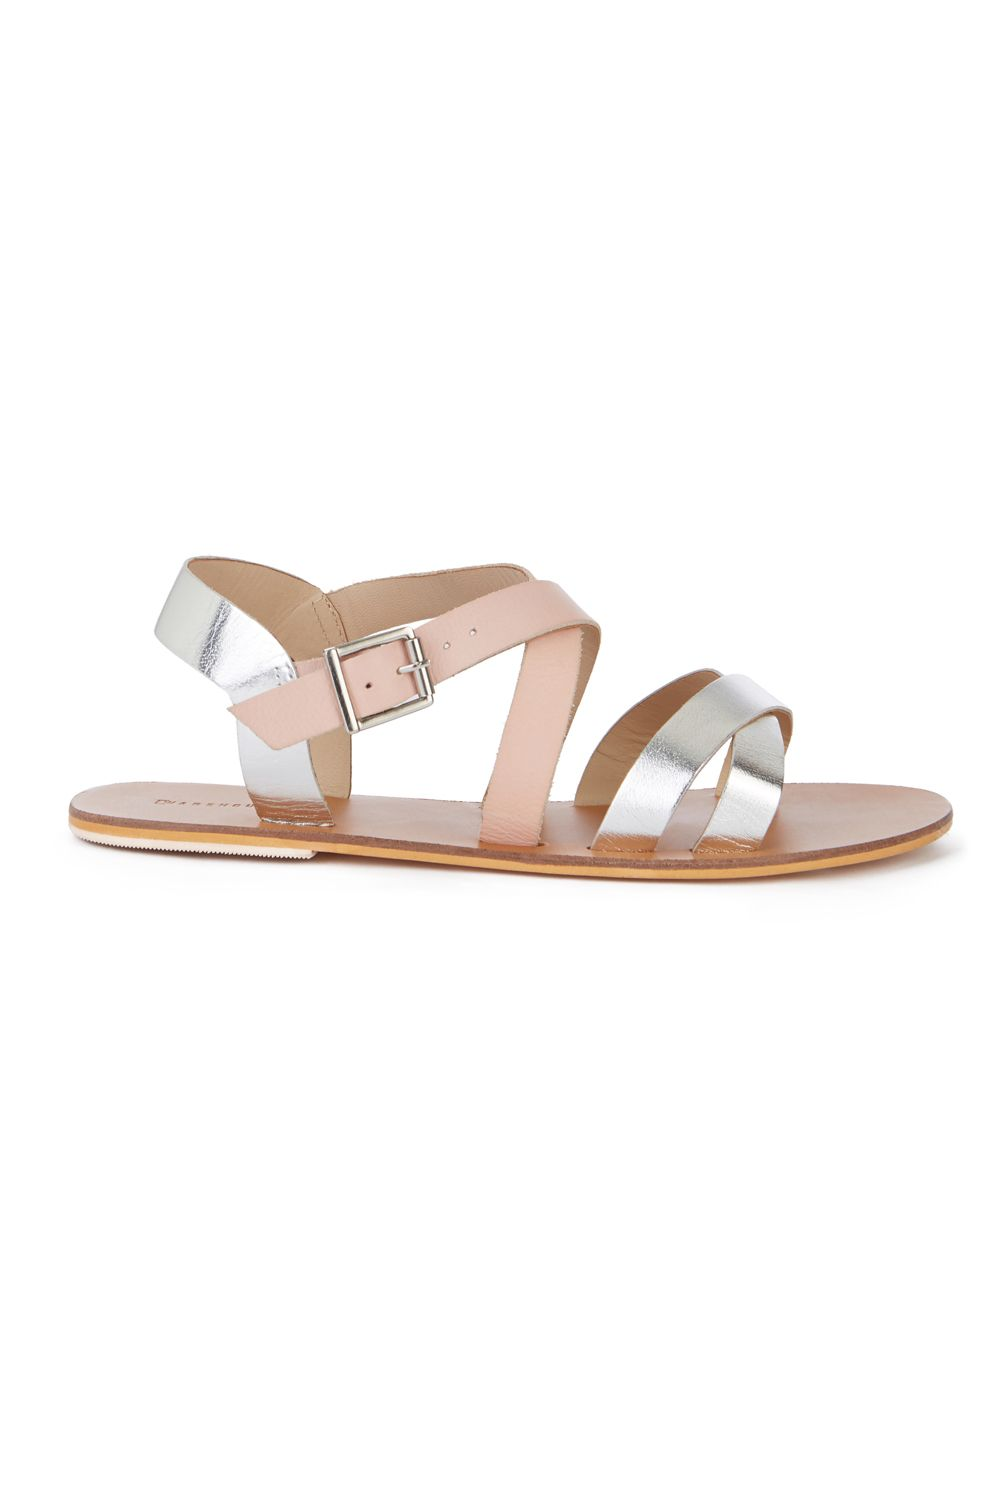 Warehouse Contrast Toe Post Sandal, Silver Silverlic